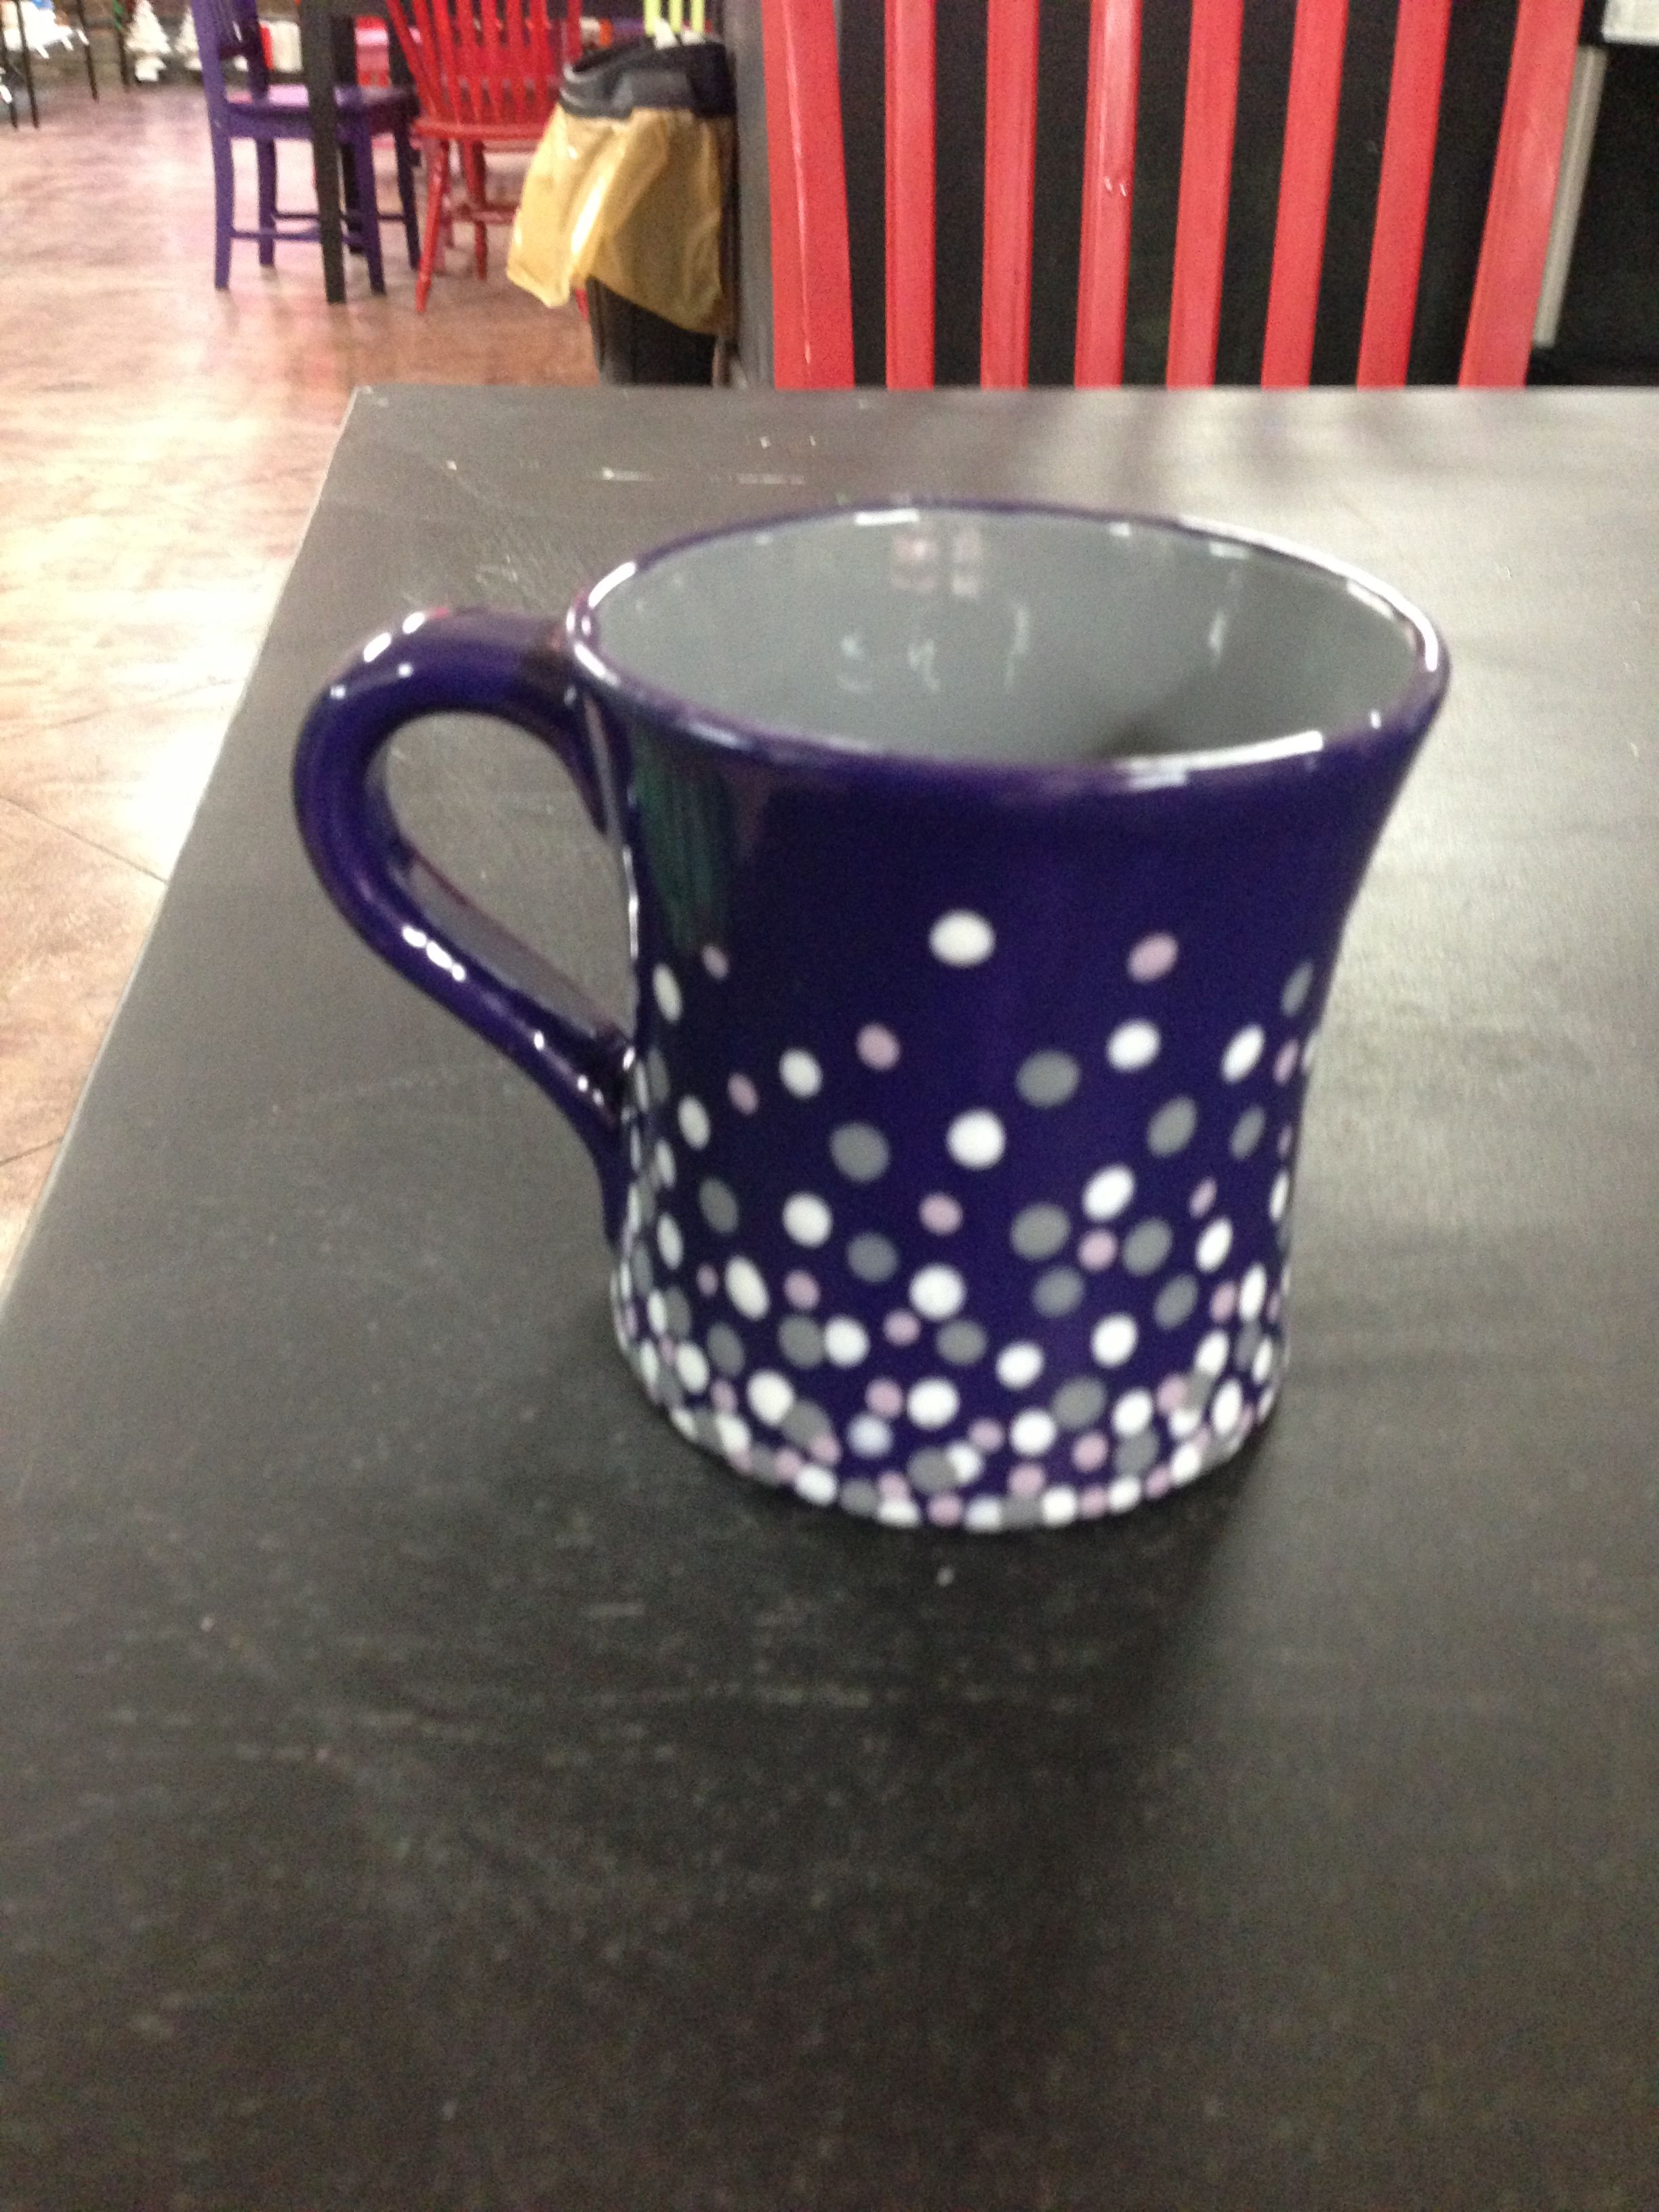 Mocha Mug Hand Painted At Pottery Worx With Images Pottery